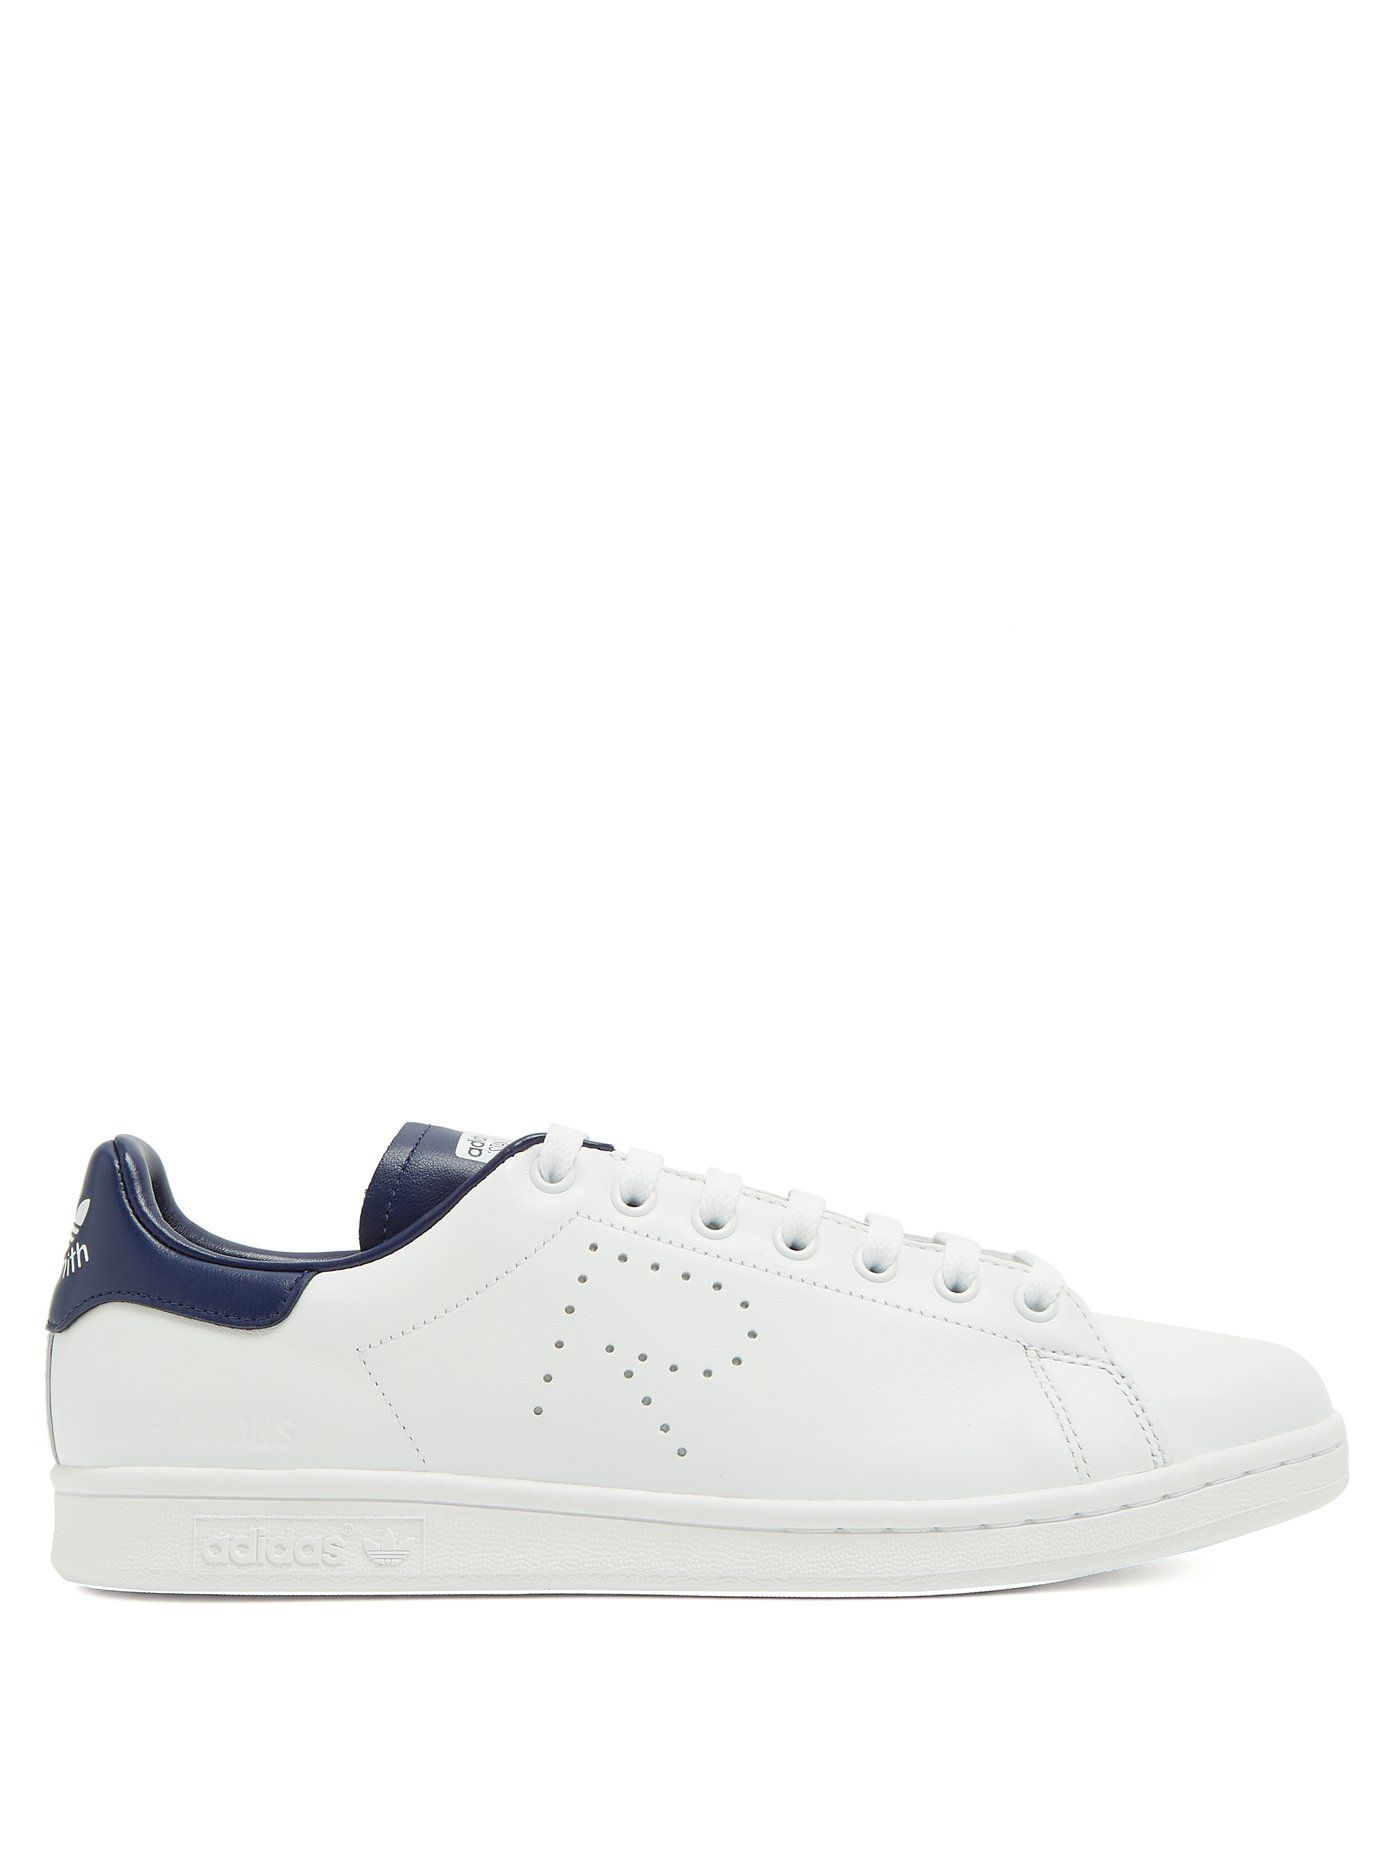 c55e9942d Raf Simons X Adidas Stan Smith low-top trainers